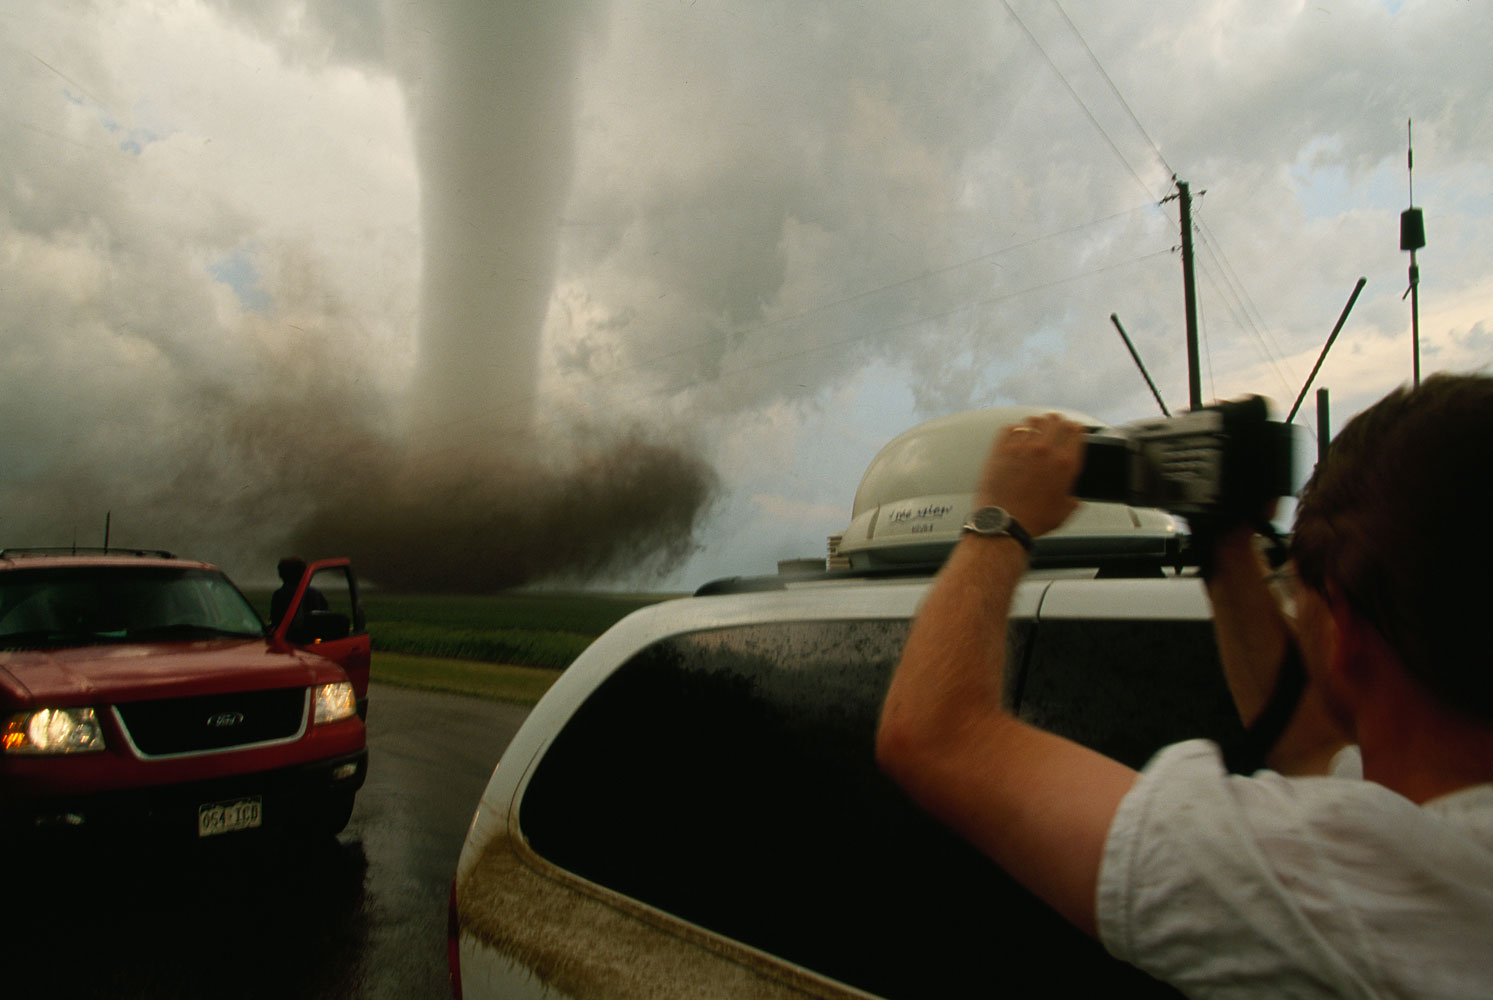 A storm chaser video taping a tornado in South Dakota, March 25, 2010.